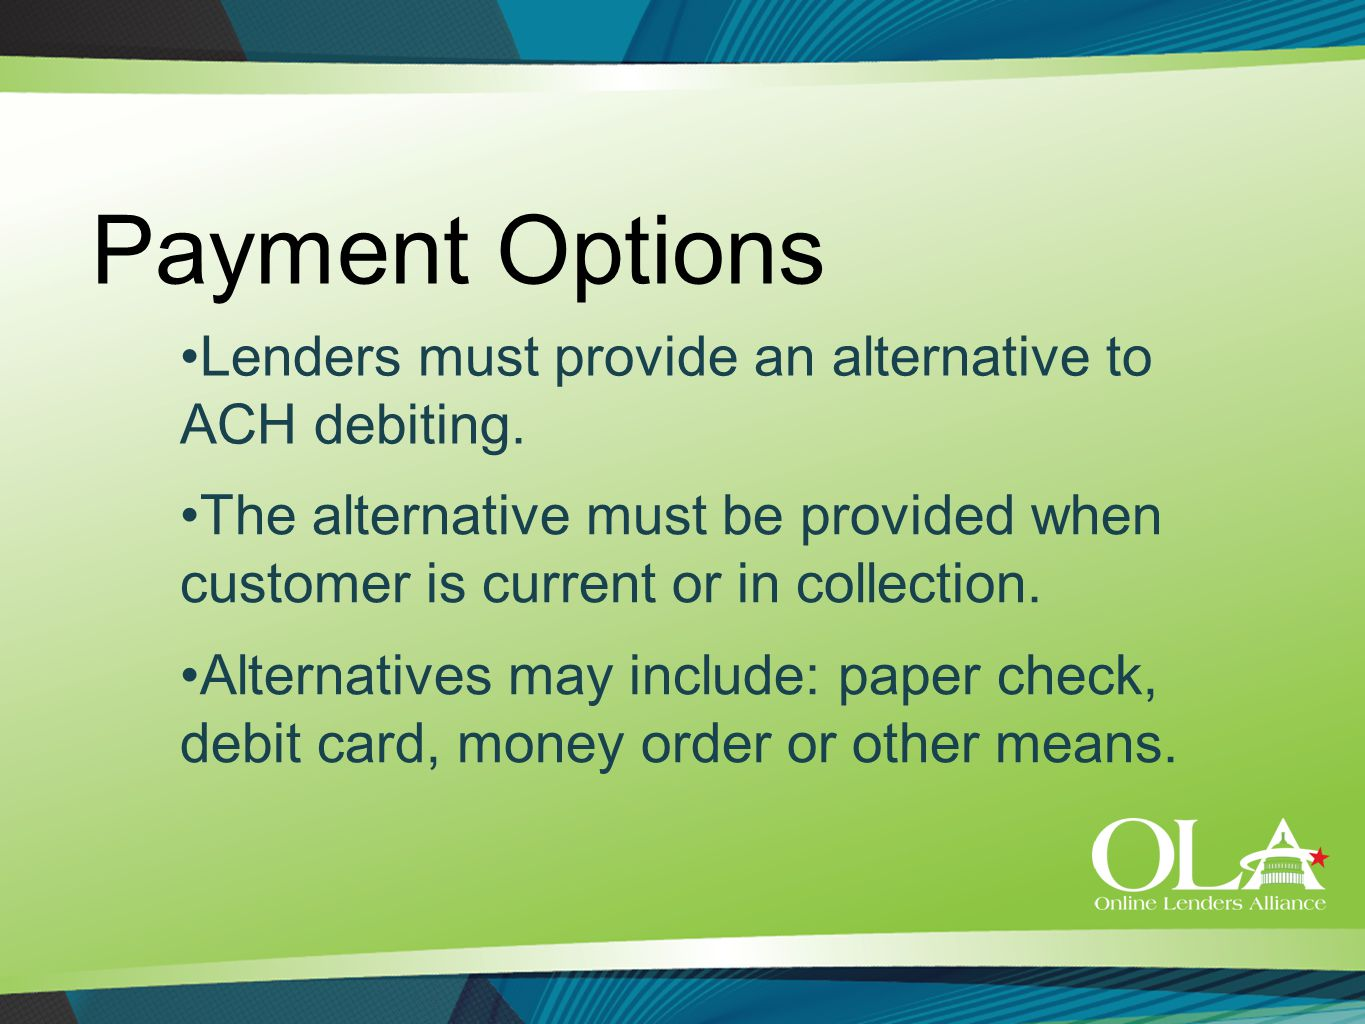 Payment Options The alternative must be provided when customer is current or in collection.